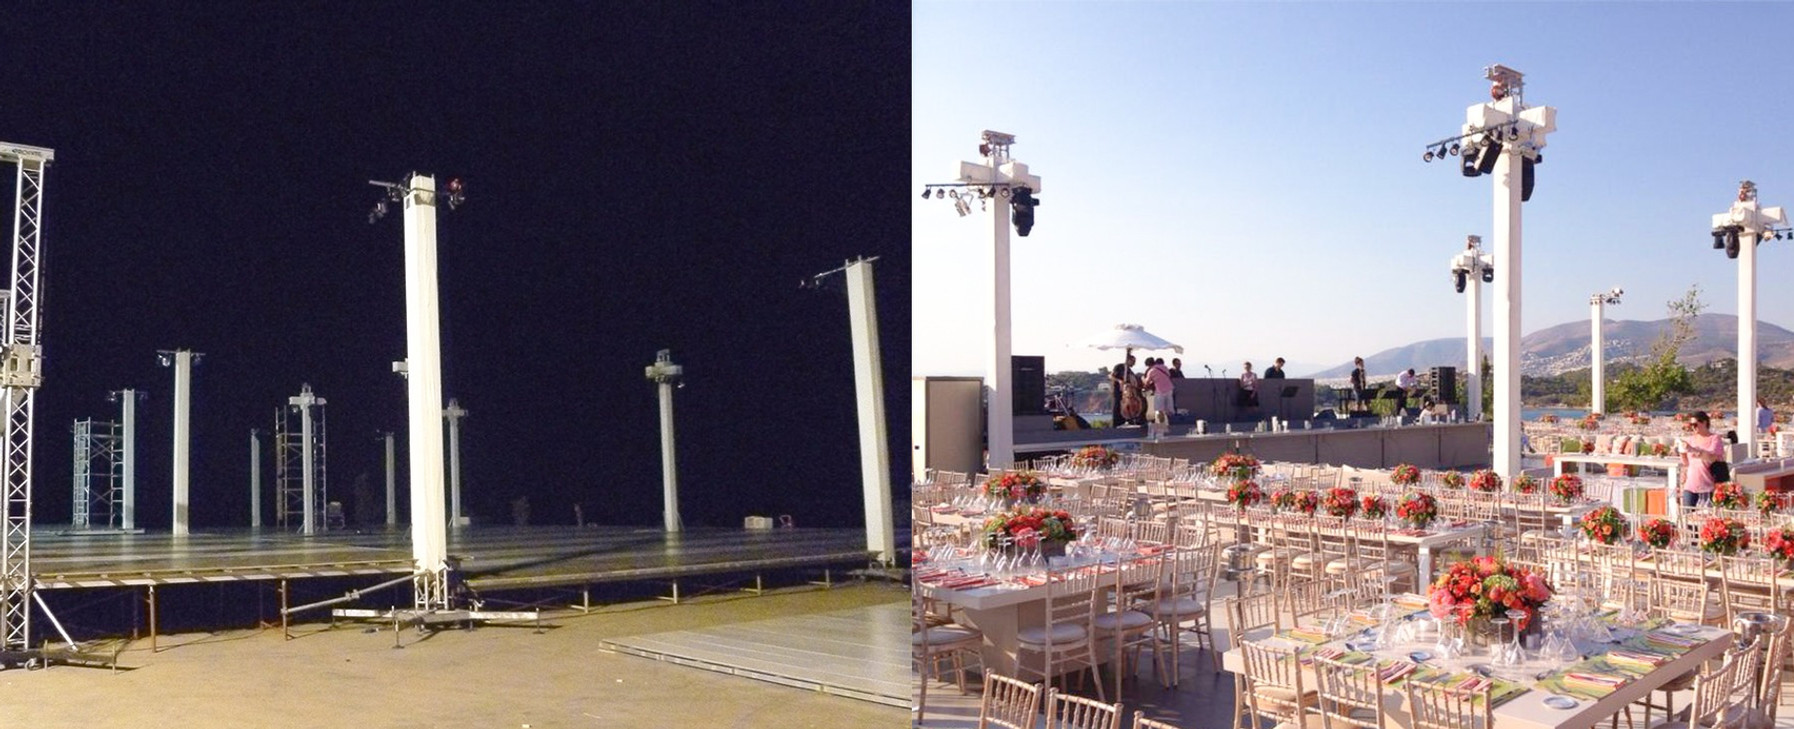 Before & After Image No11.1